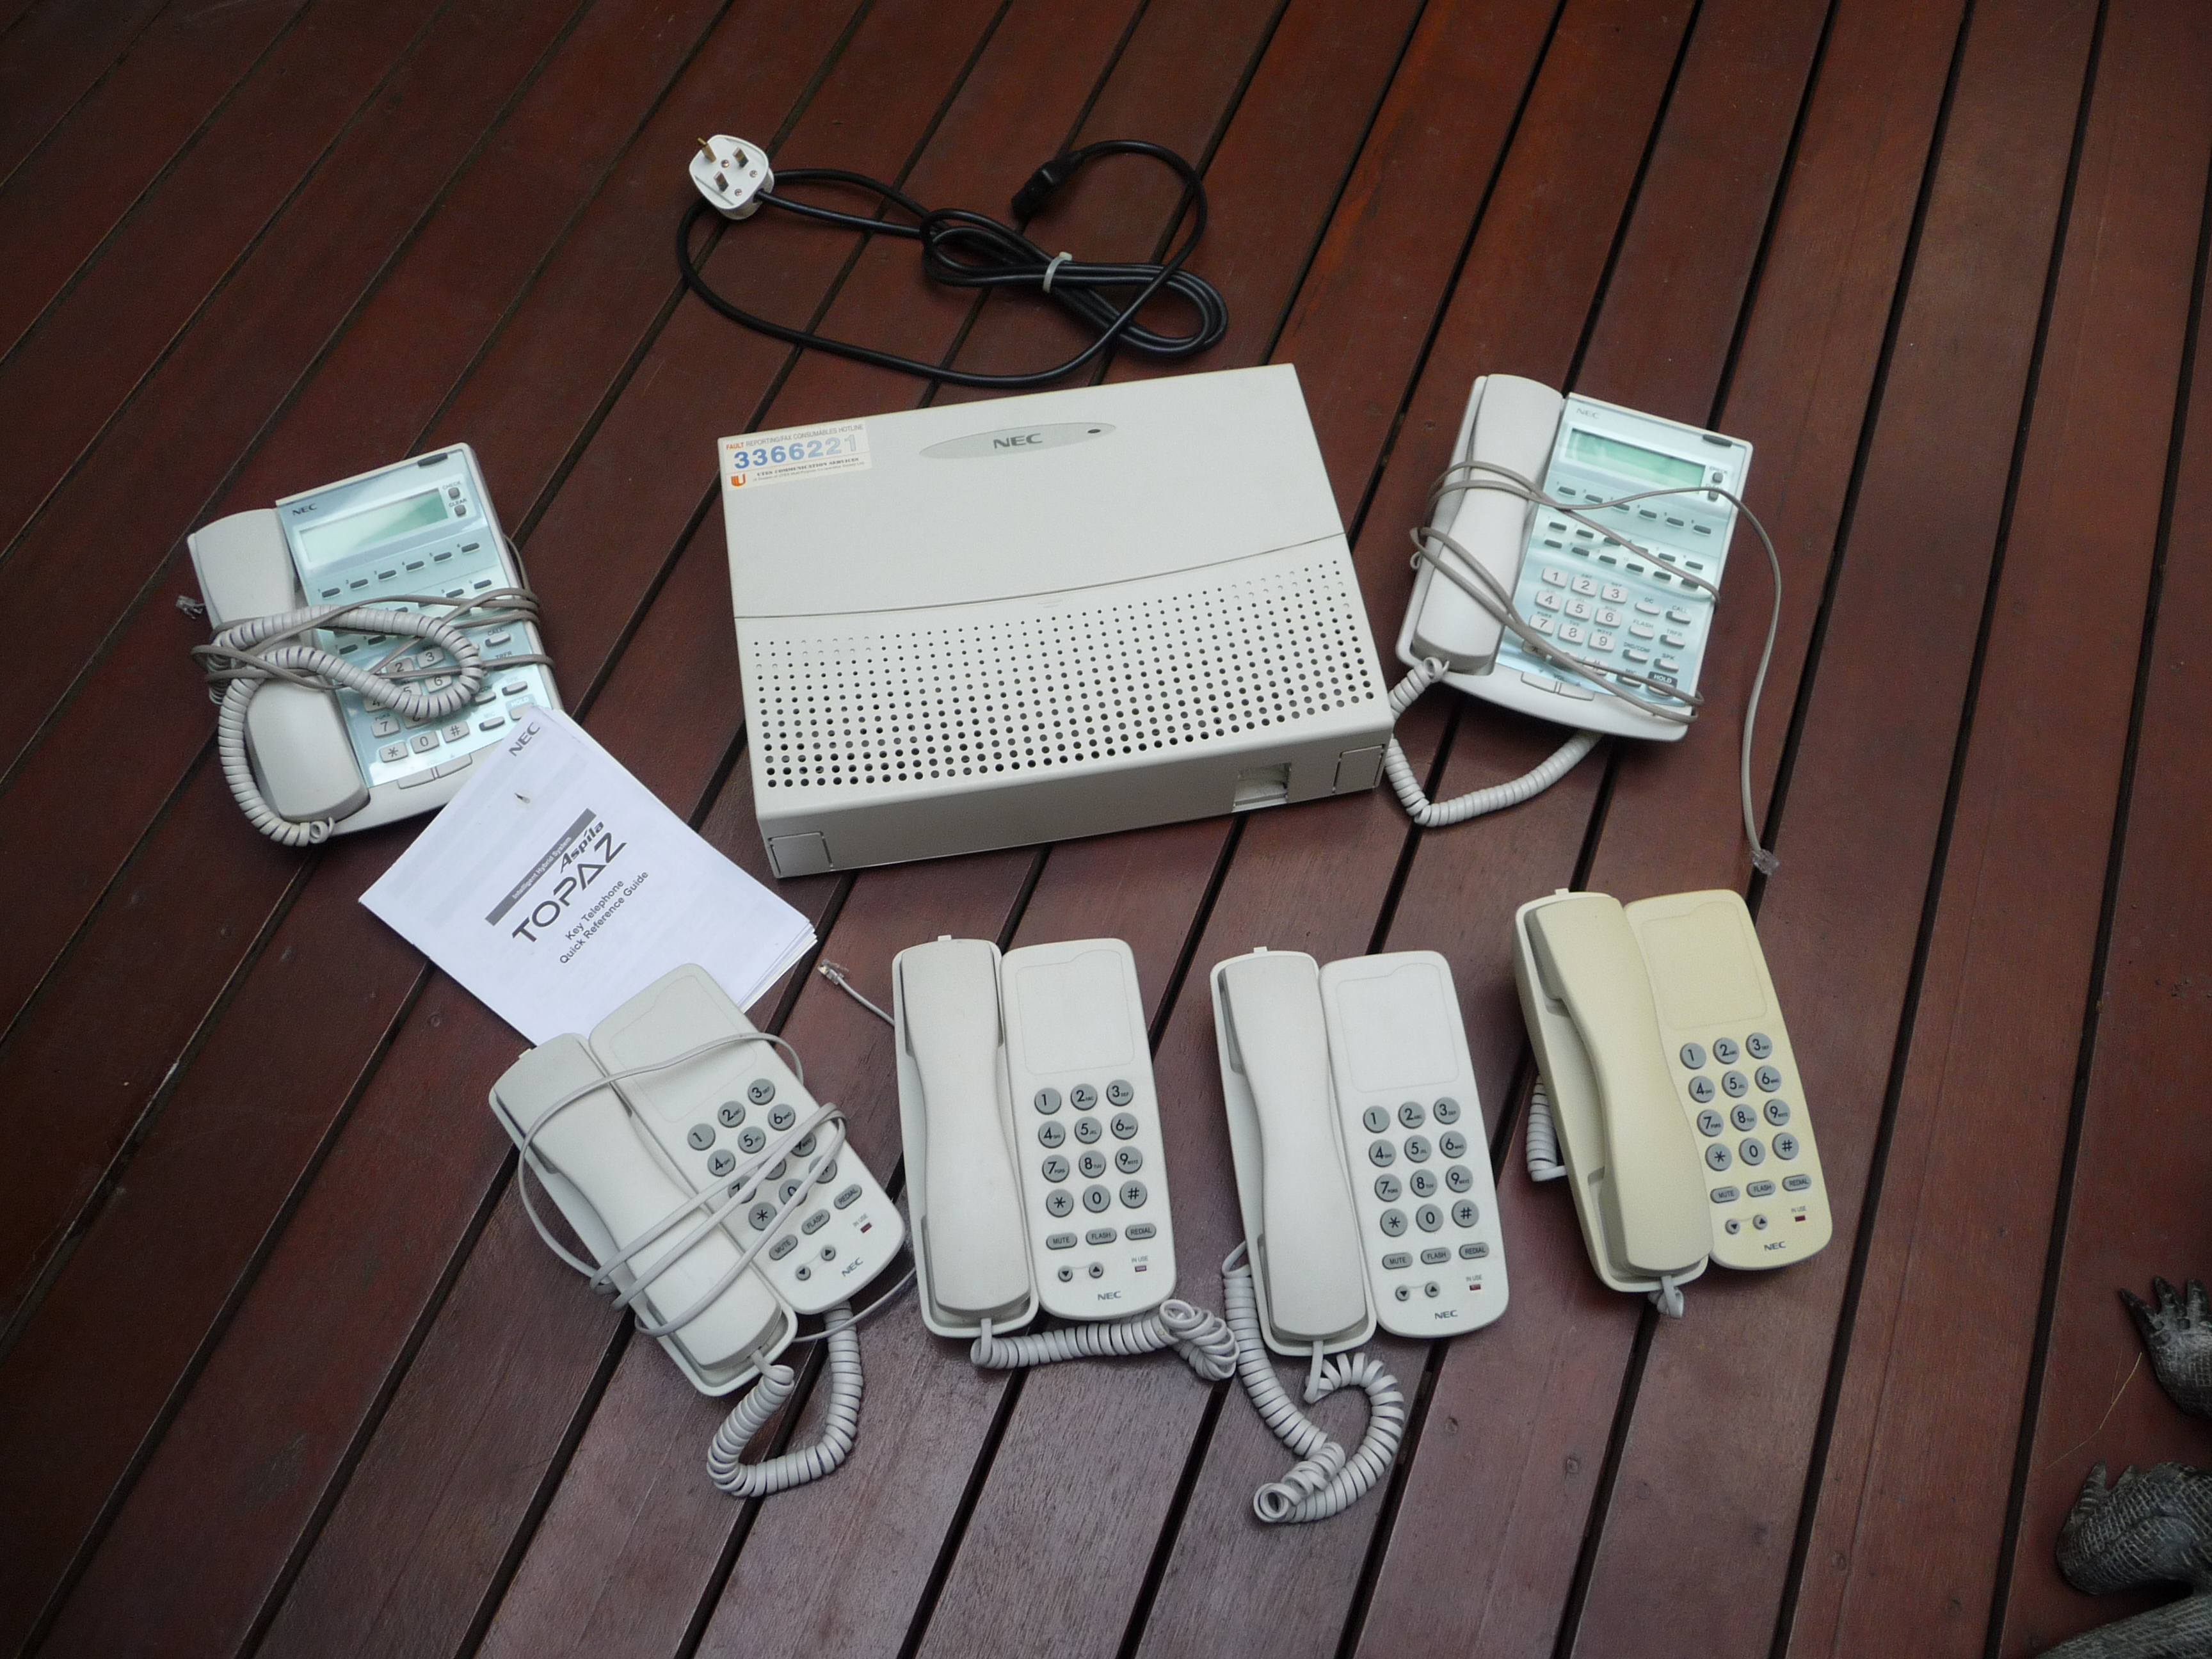 FOR SALE: NEC Topaz Phone System - used one year - very good quality